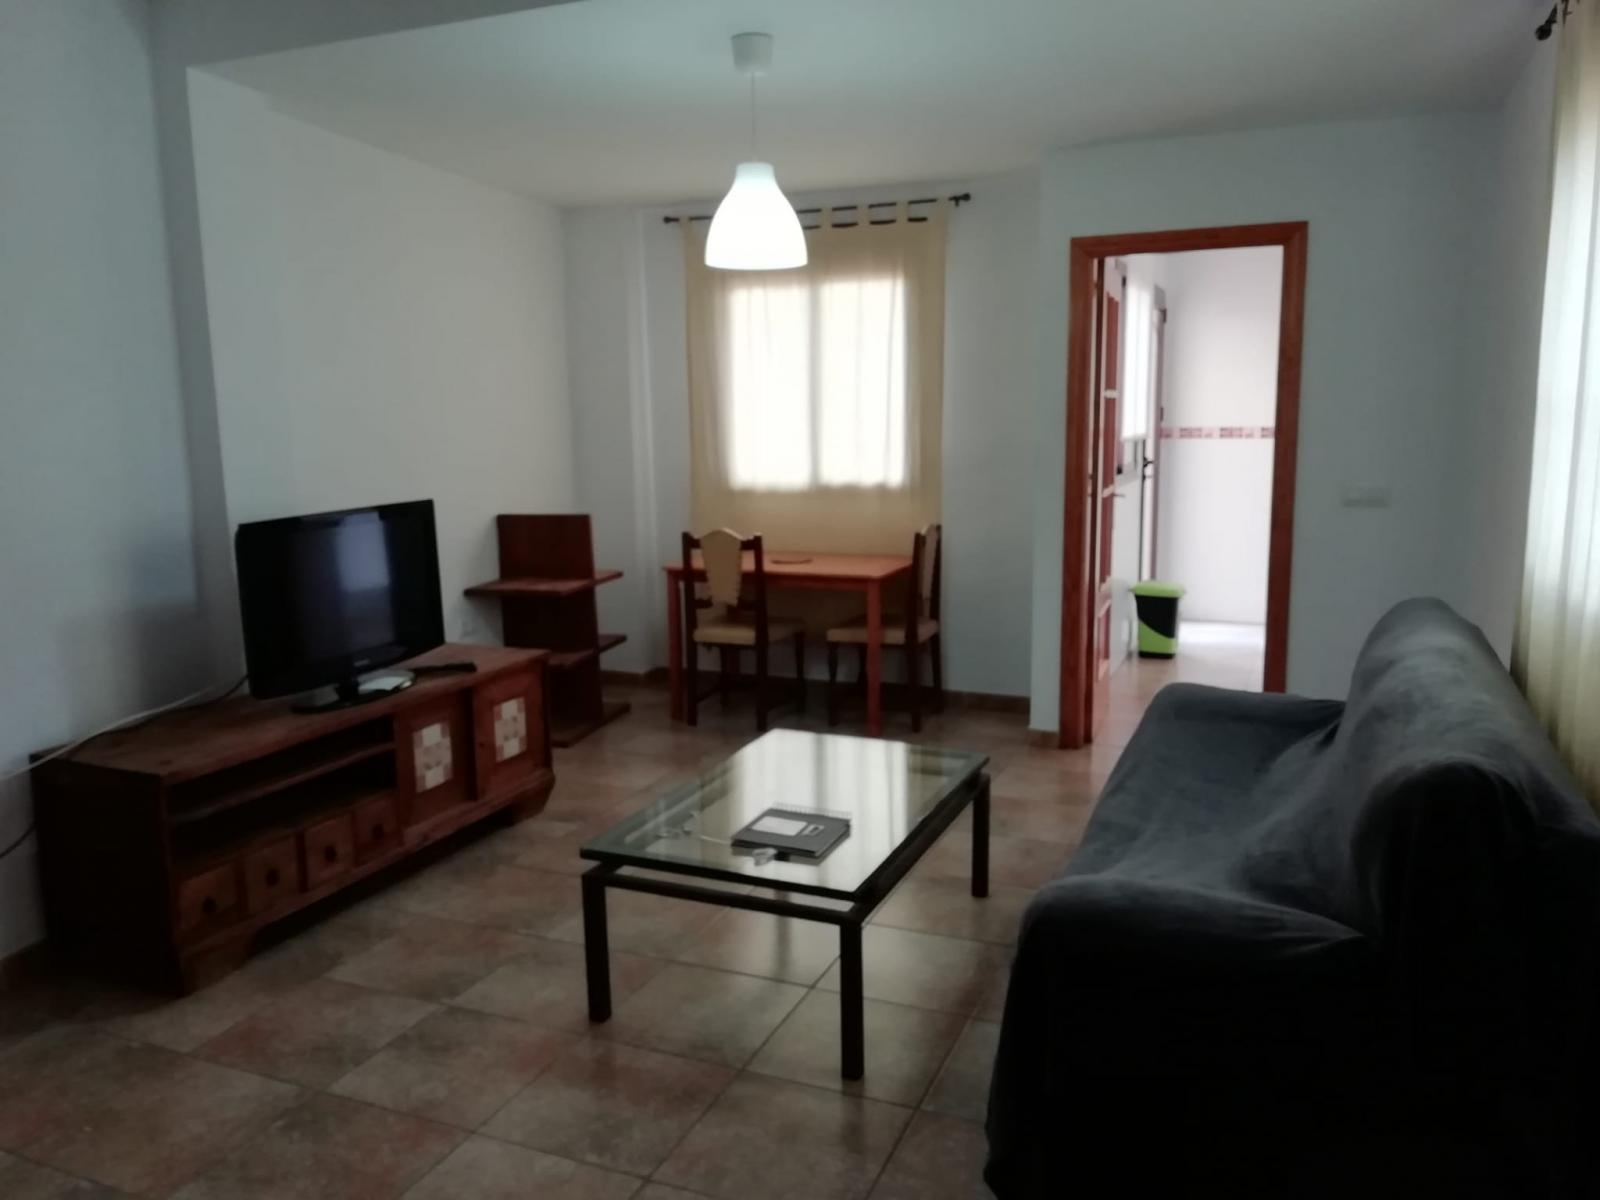 3 bedroom house for rent by owner near me